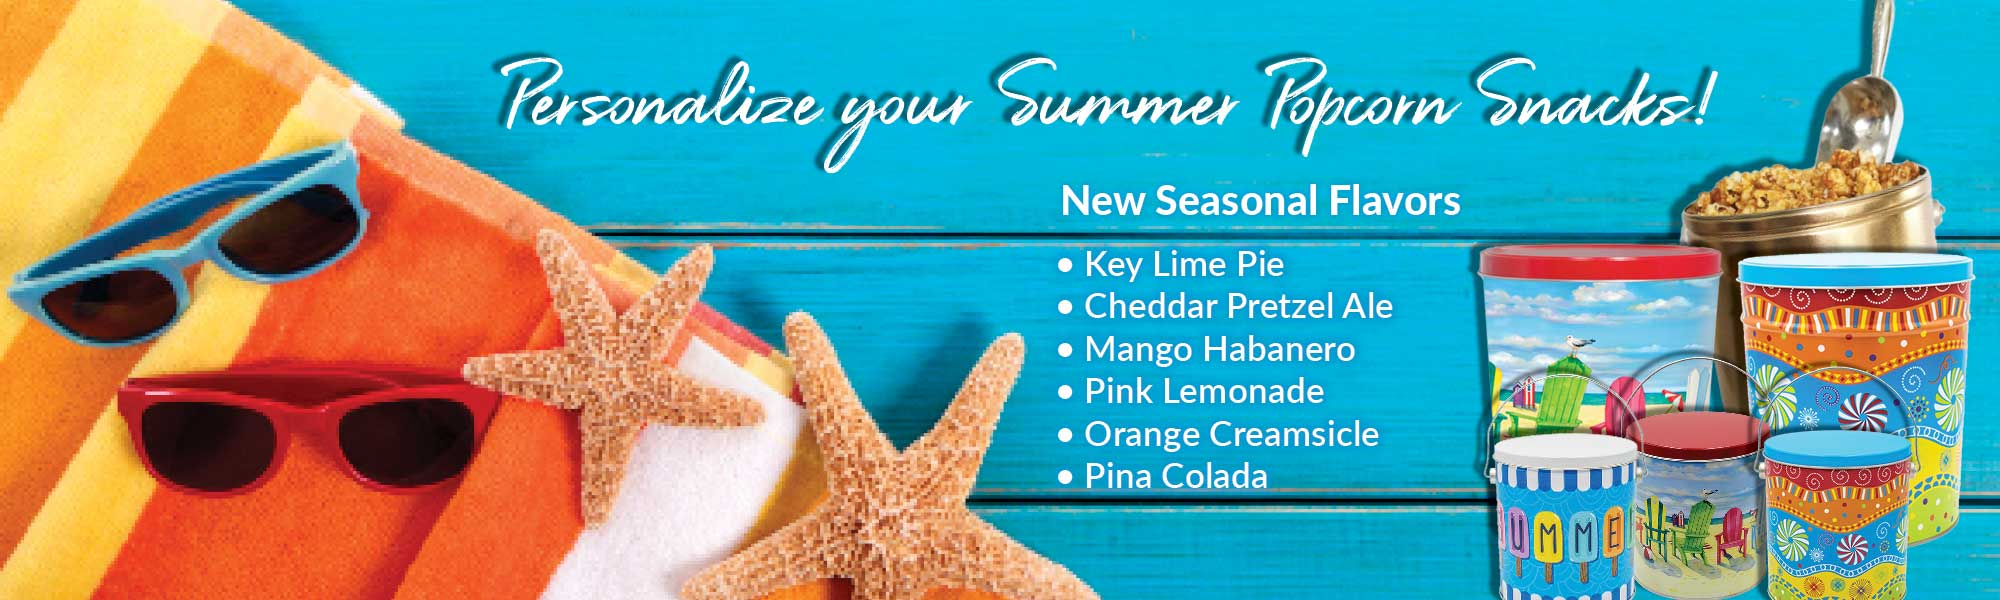 Personalize Your Summer Popcorn